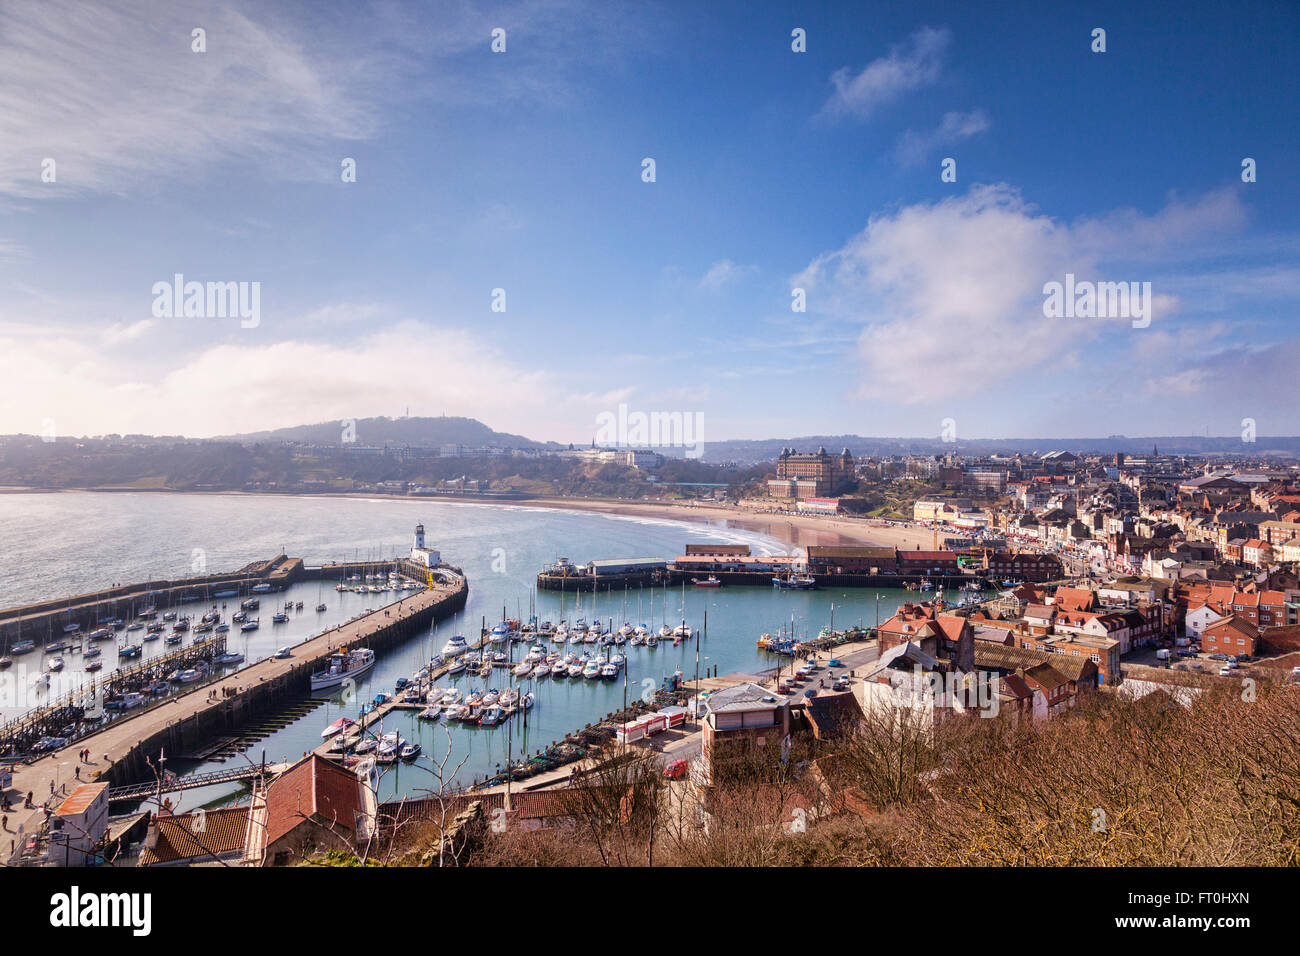 Aerial view over Scarborough, North Yorkshire, from the headland. - Stock Image